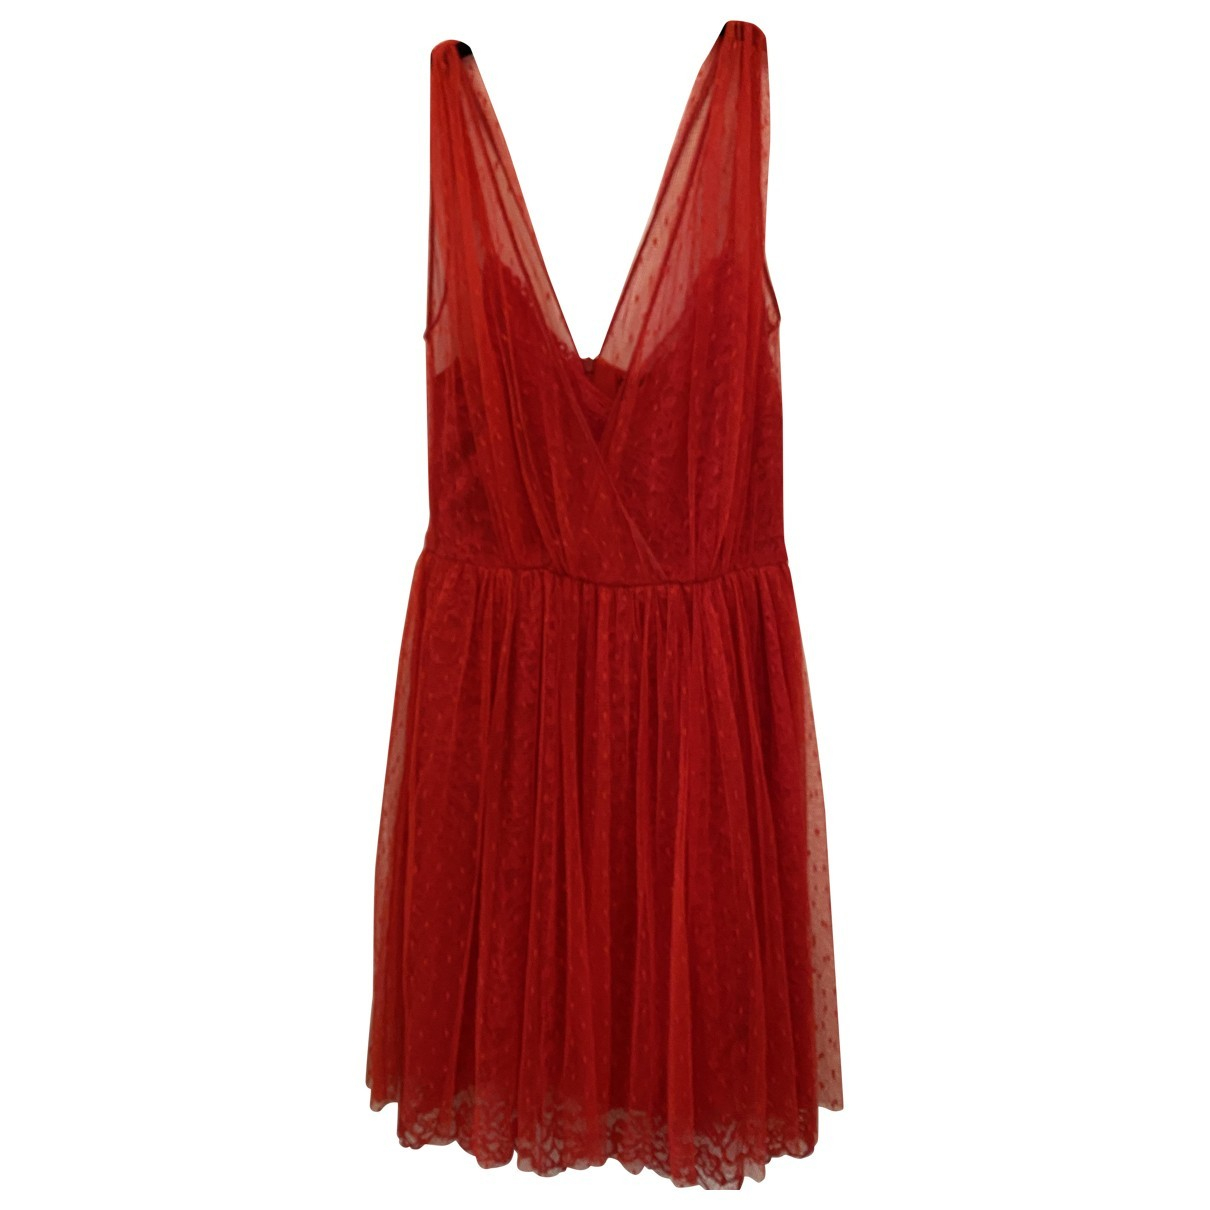 Ermanno Scervino \N Red Lace dress for Women XS International